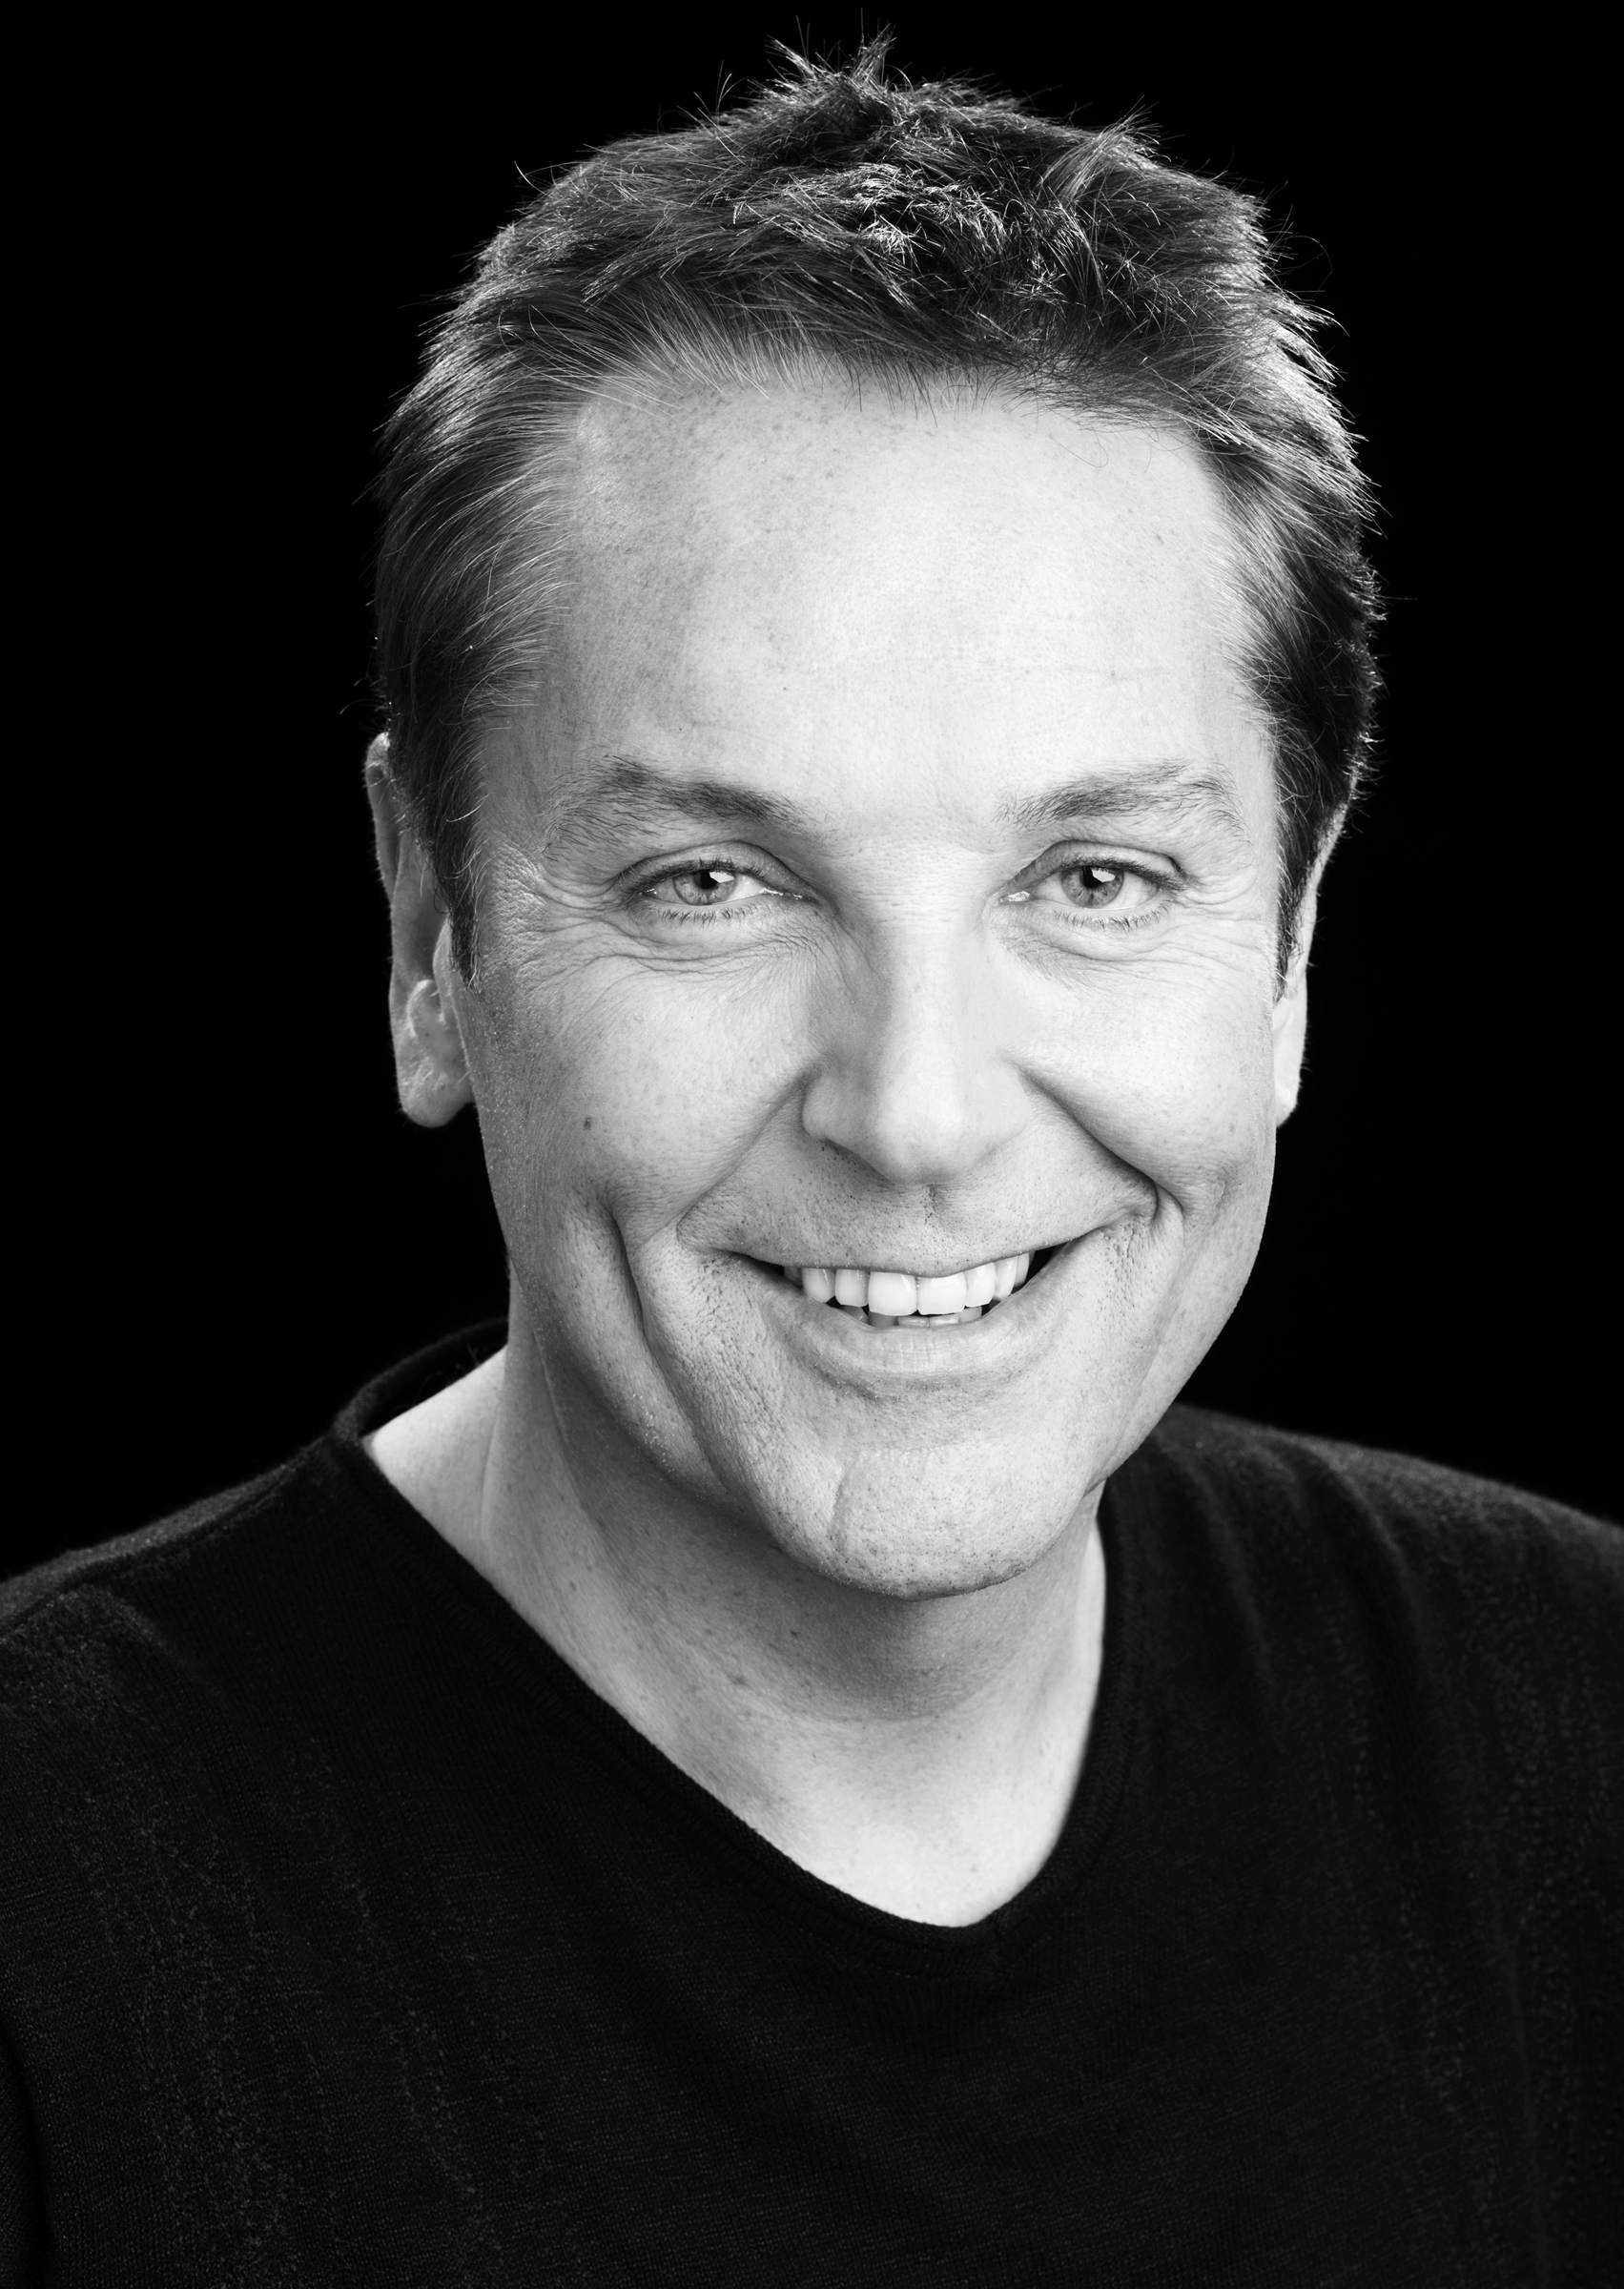 and BRIAN CONLEY